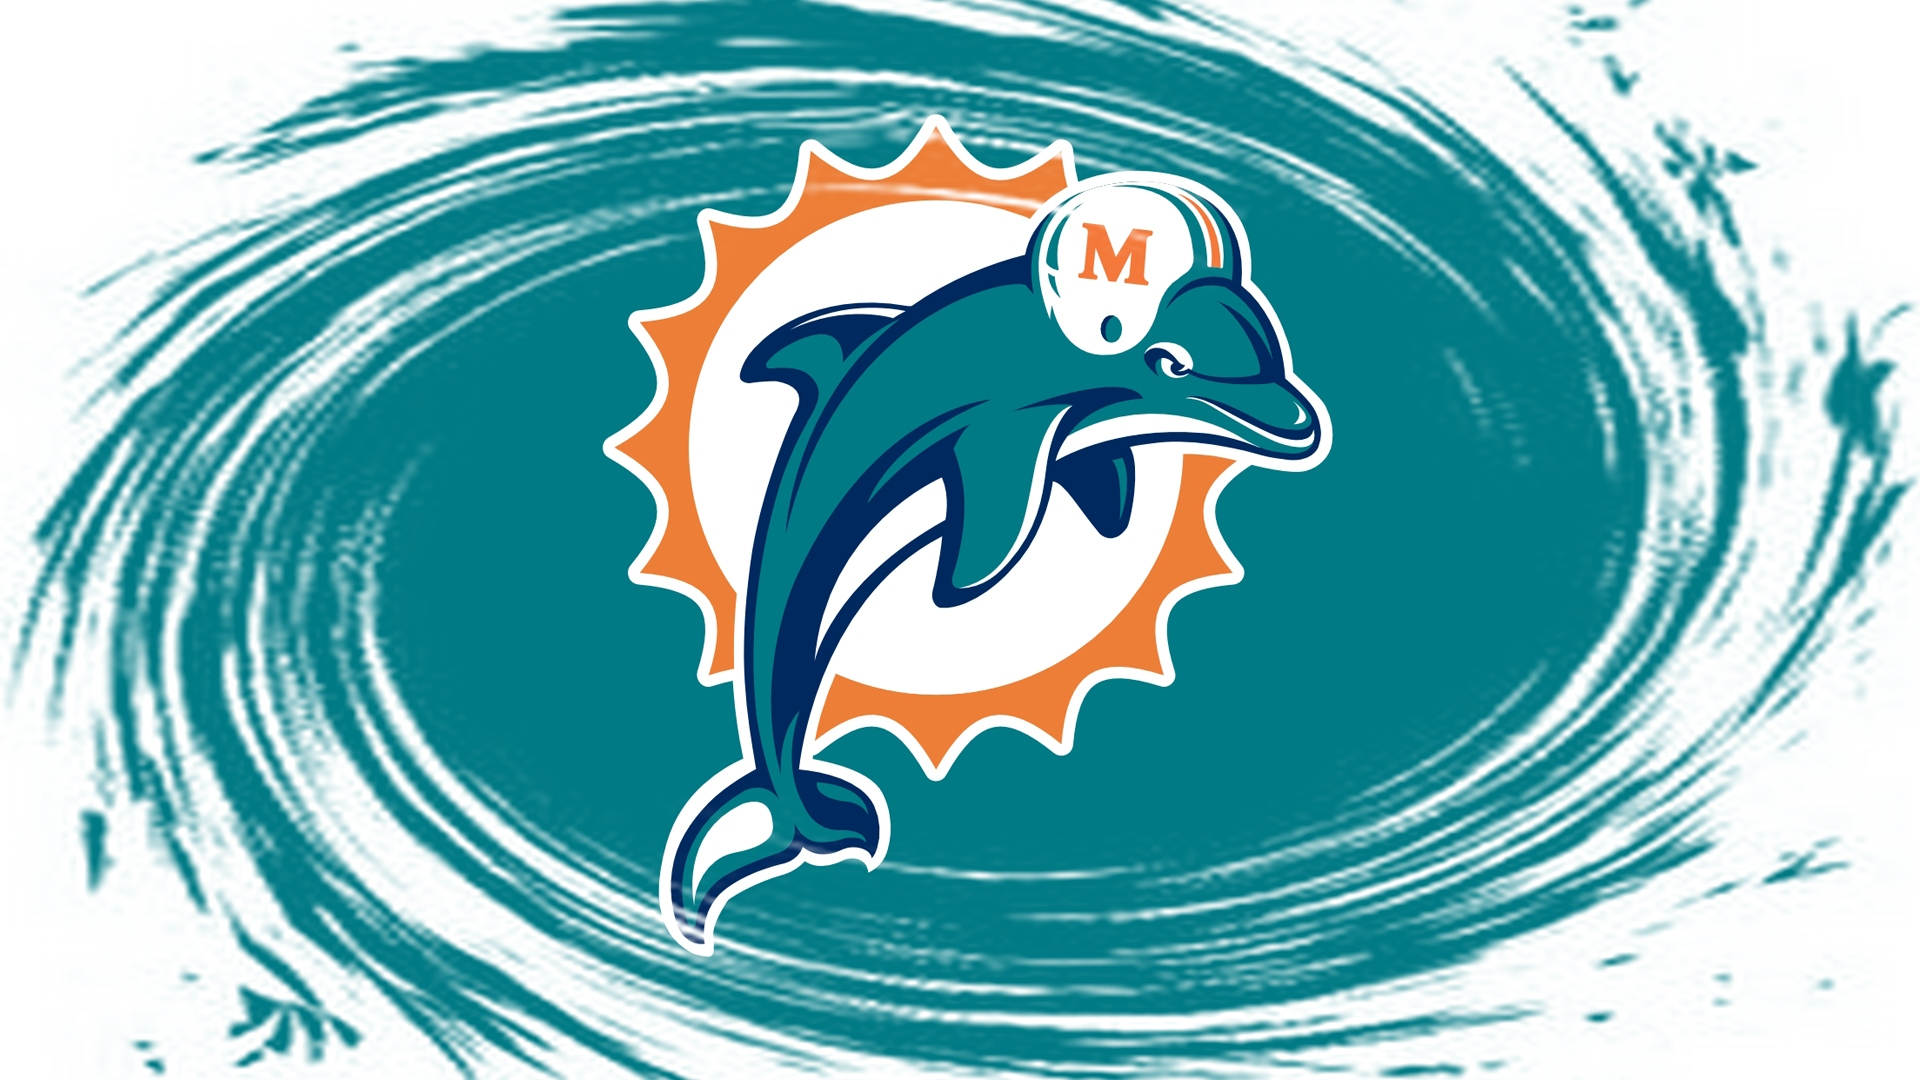 Miami Dolphins HD images Miami Dolphins wallpapers 1920x1080